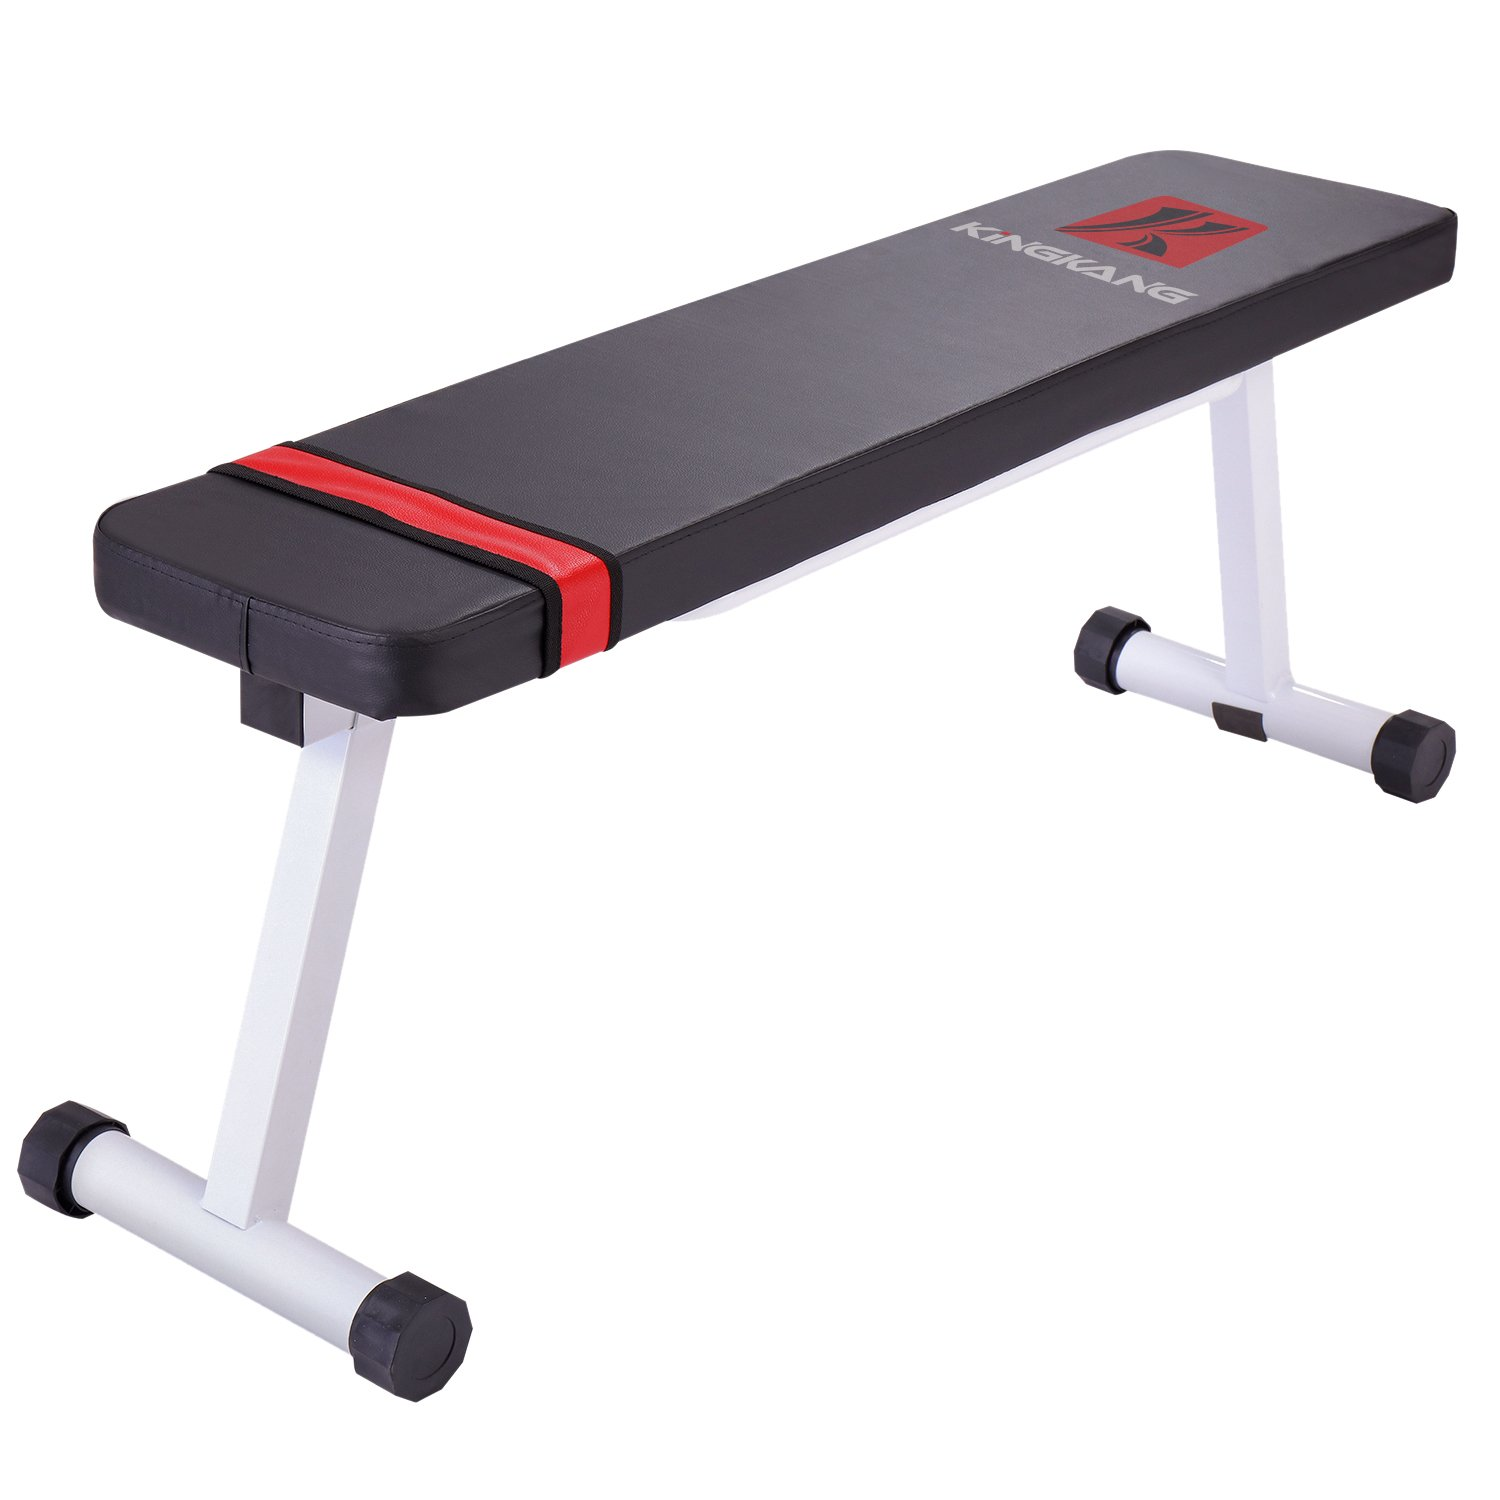 K KiNGKANG Flat Weight Bench Versatile Sit Ups Home Fitness Workout Strength Training Equipment